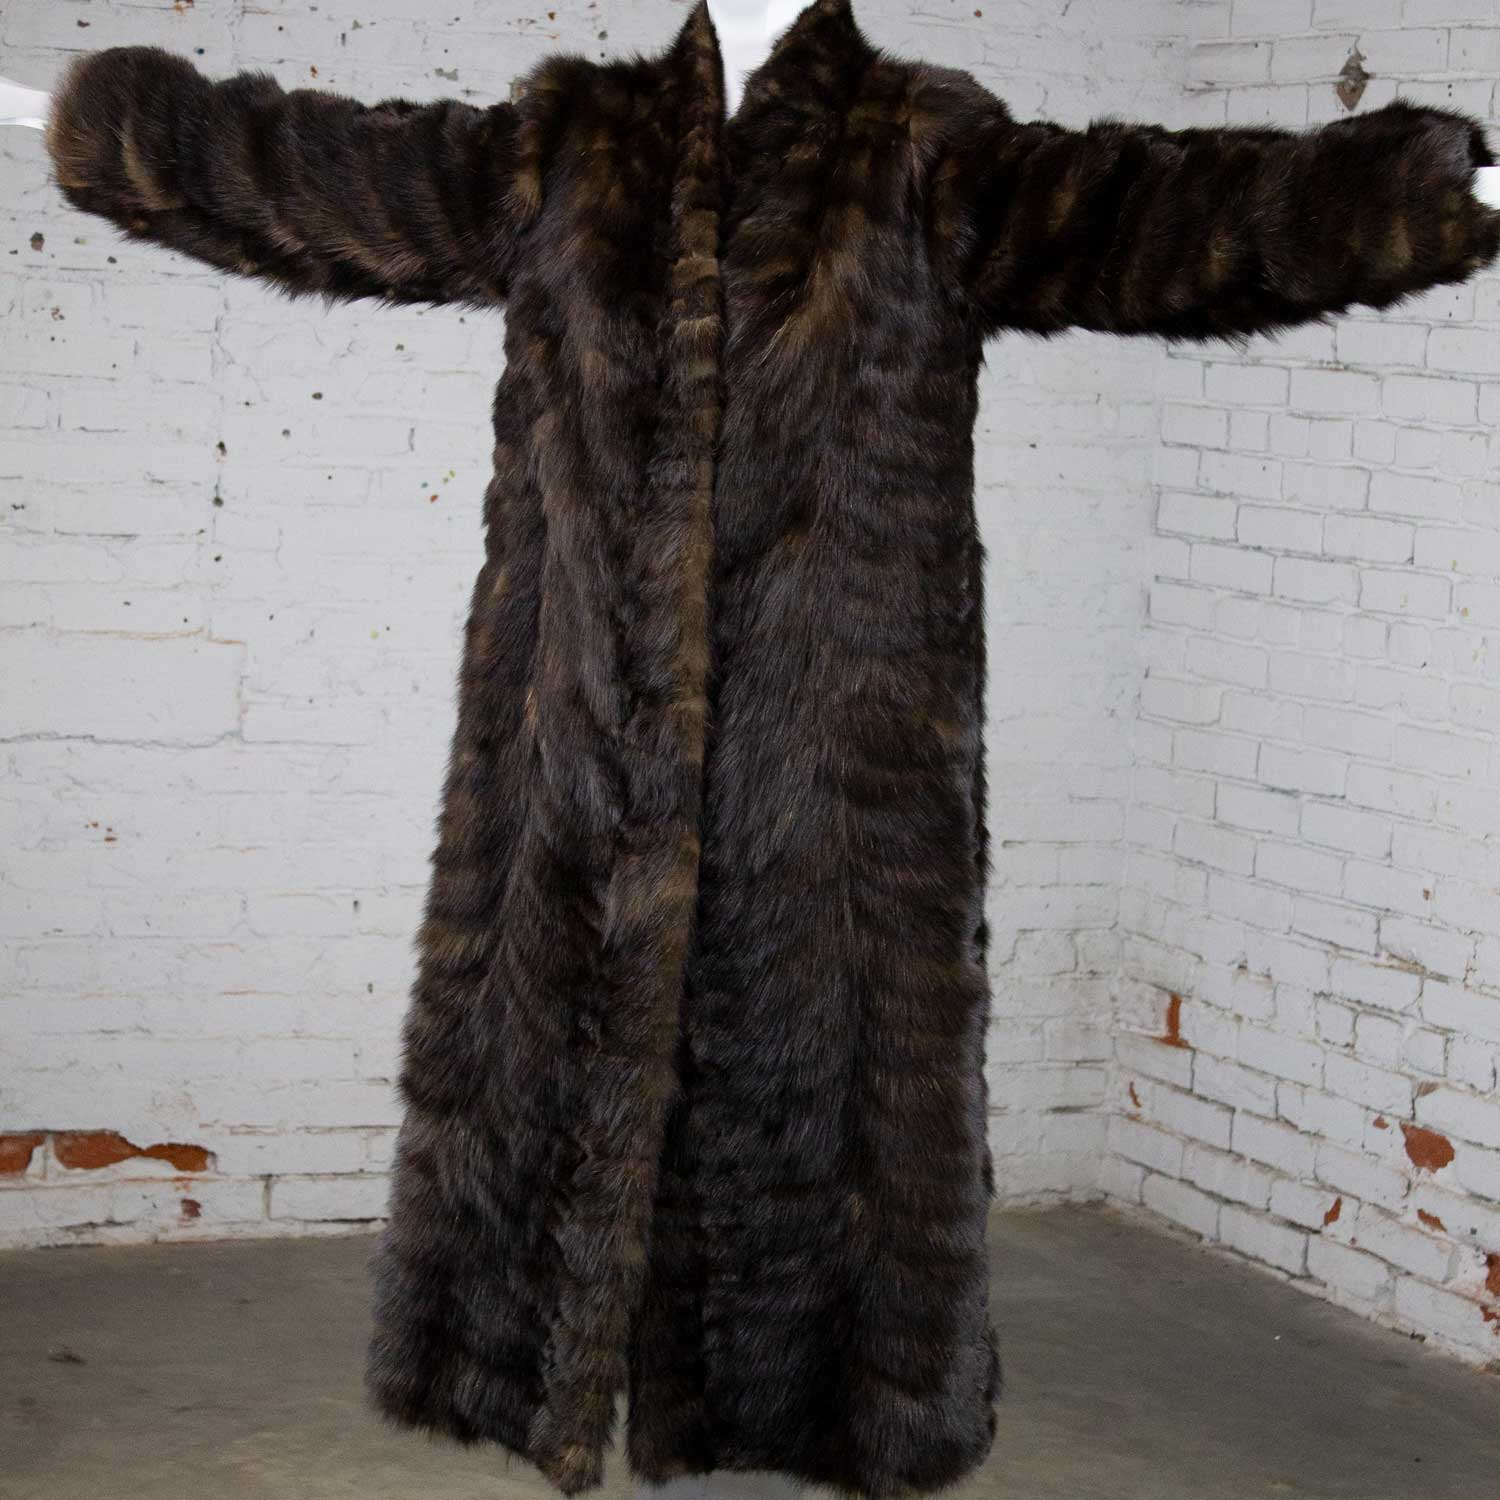 Vintage Full Length Mink Coat Circa, How Much Did A Mink Coat Cost In 1980